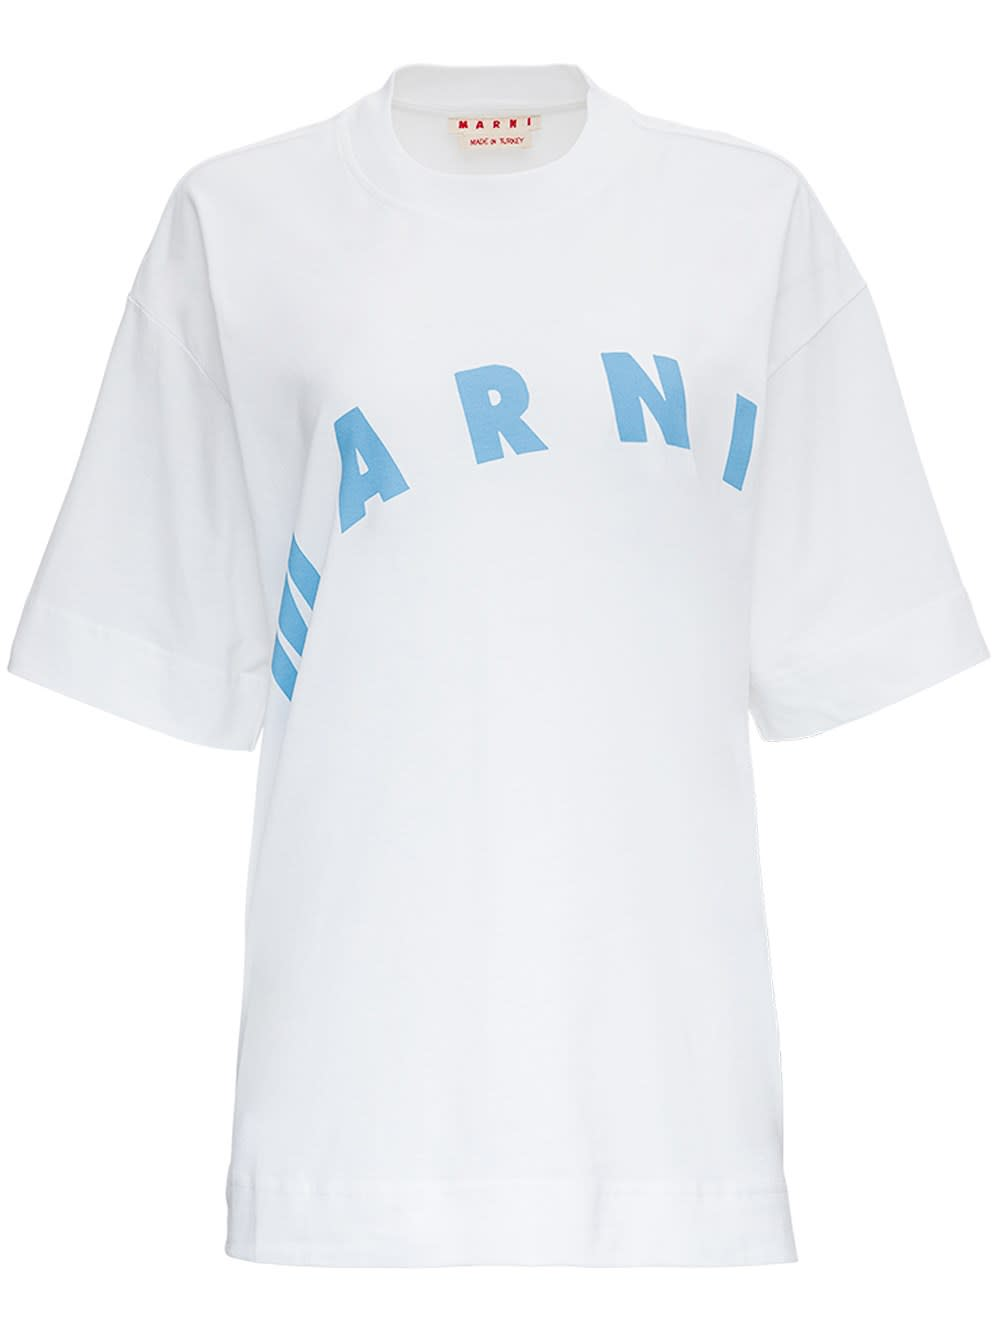 Marni COTTON T-SHIRT WITH LOGO